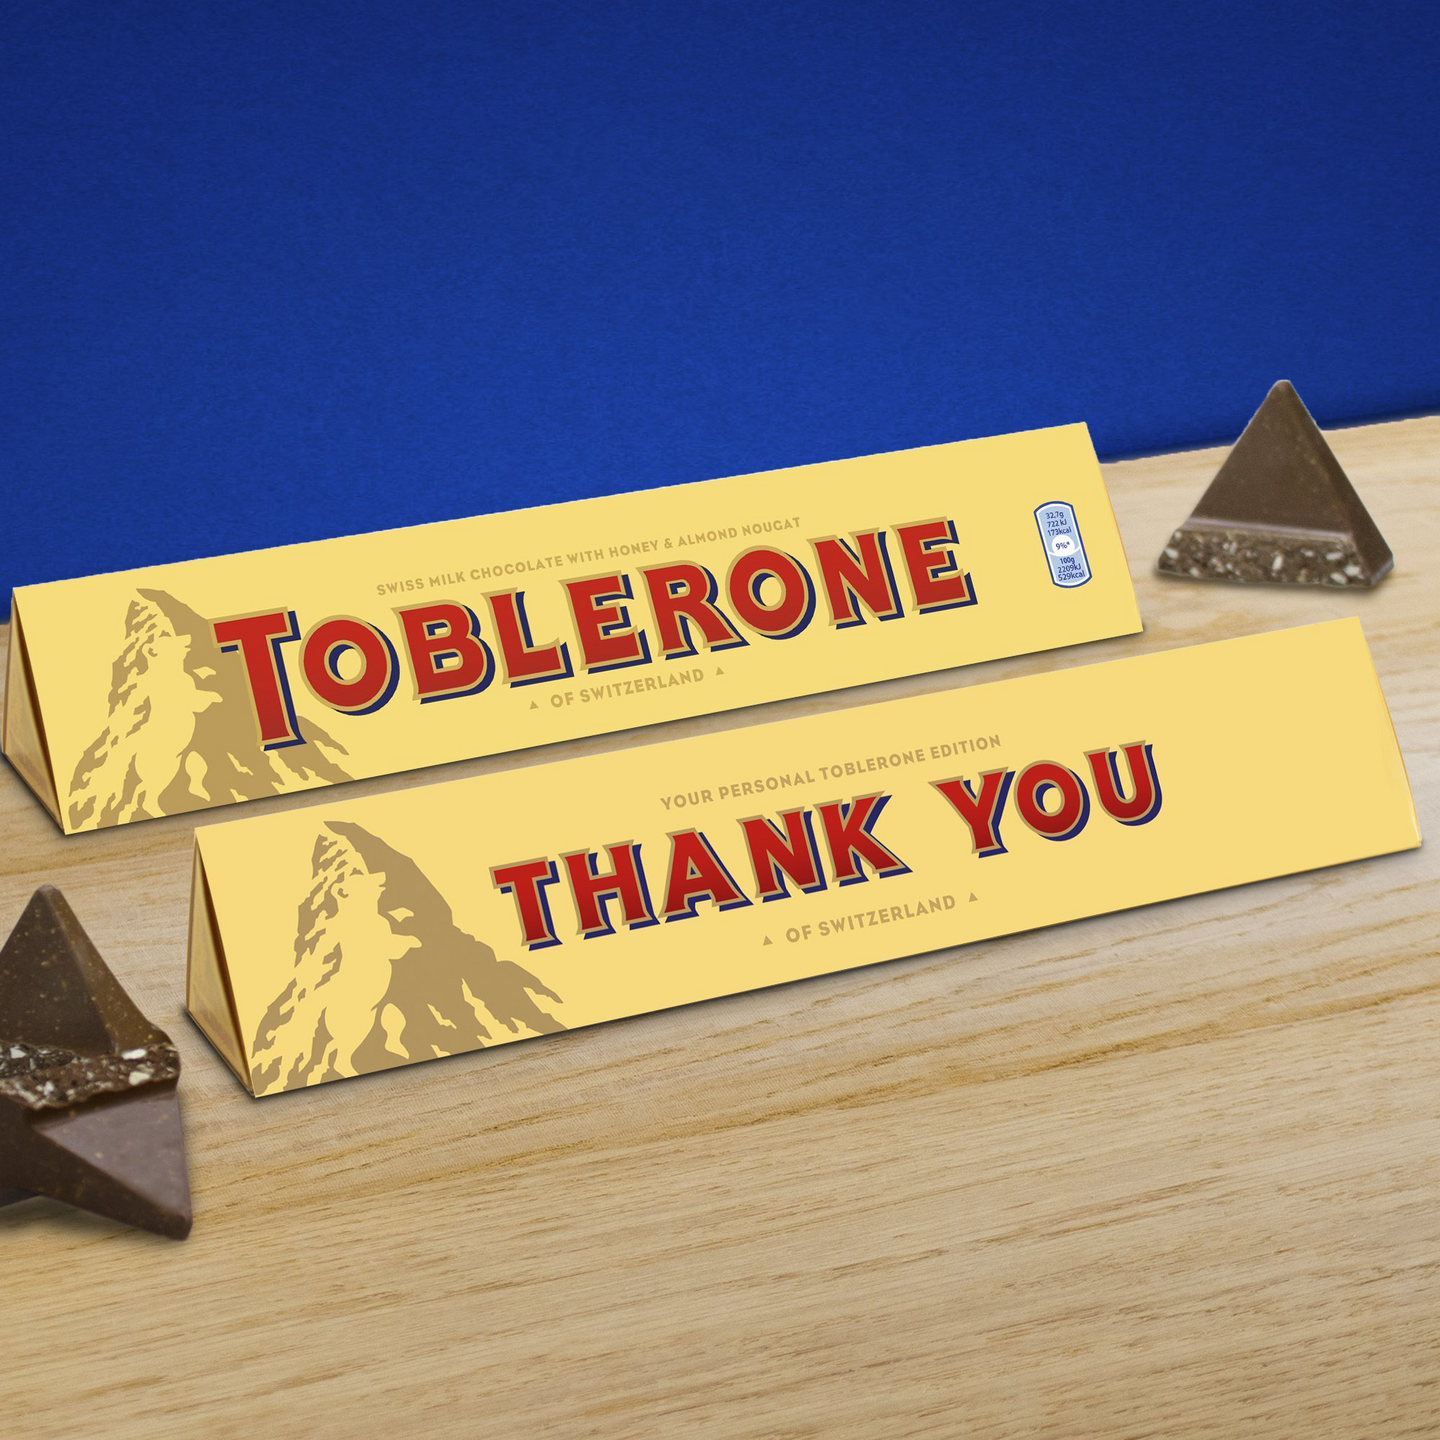 360g Milk Chocolate Toblerone with 'Thank You' Sleeve